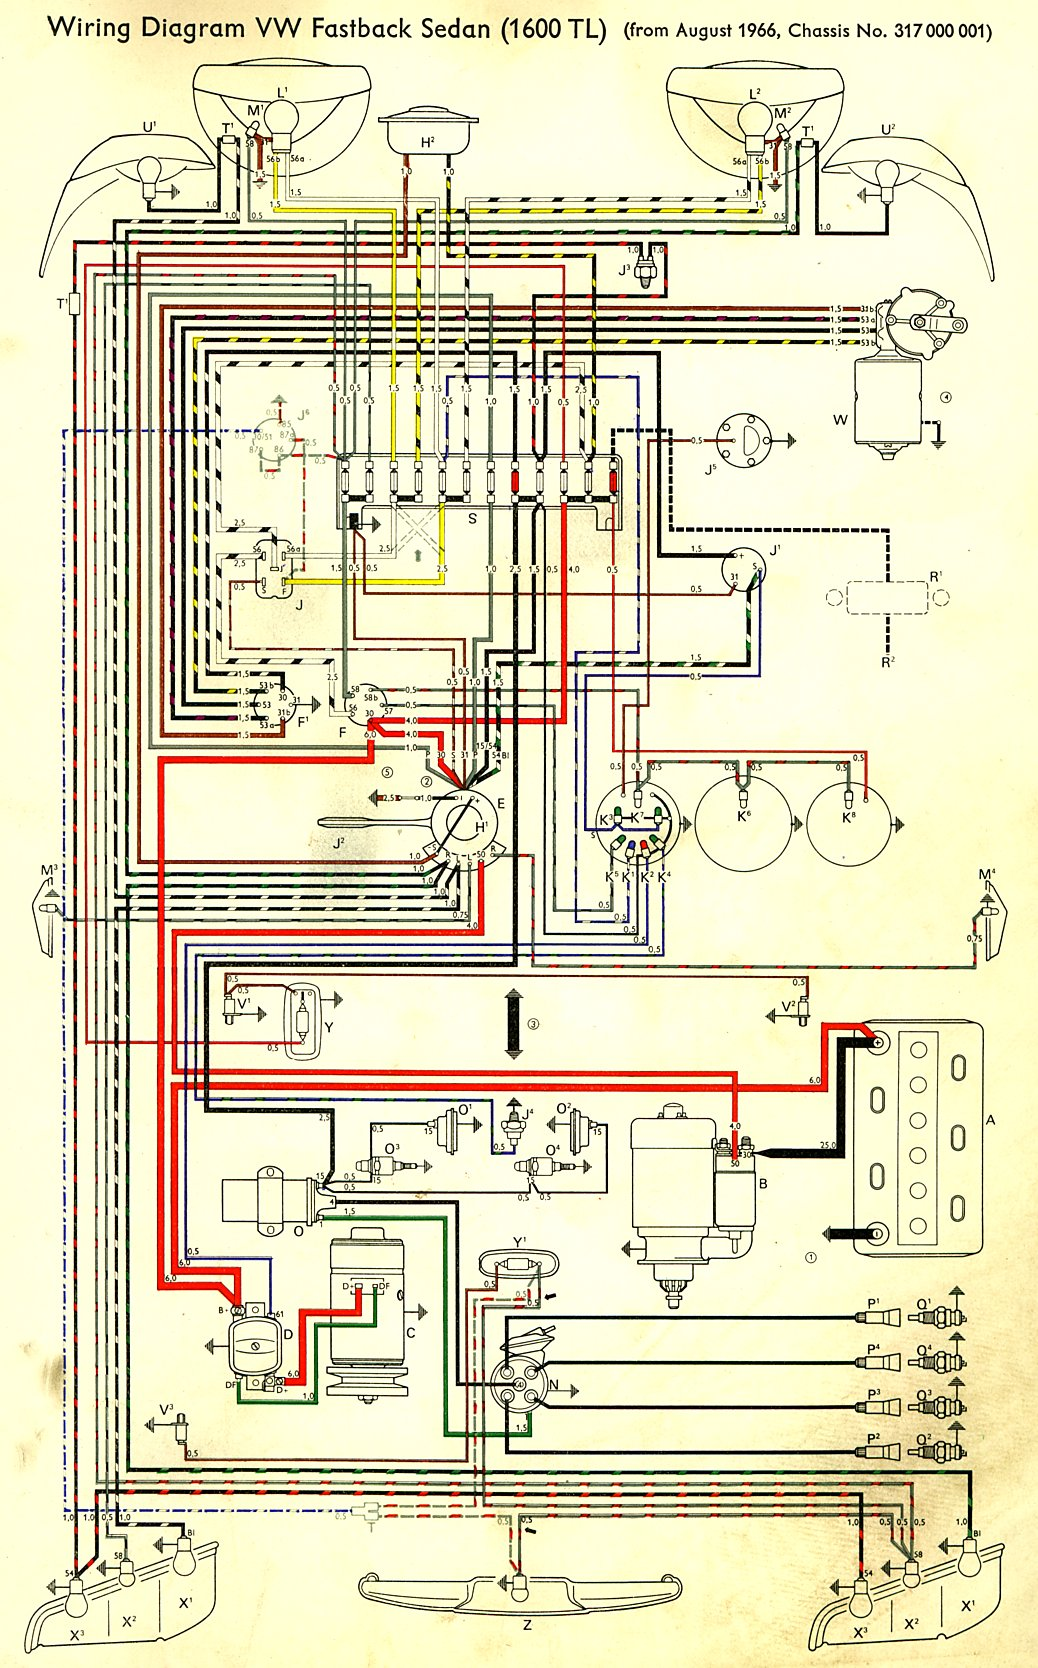 vw type 3 wiring diagram 1968 schematics wiring diagrams u2022 rh seniorlivinguniversity co